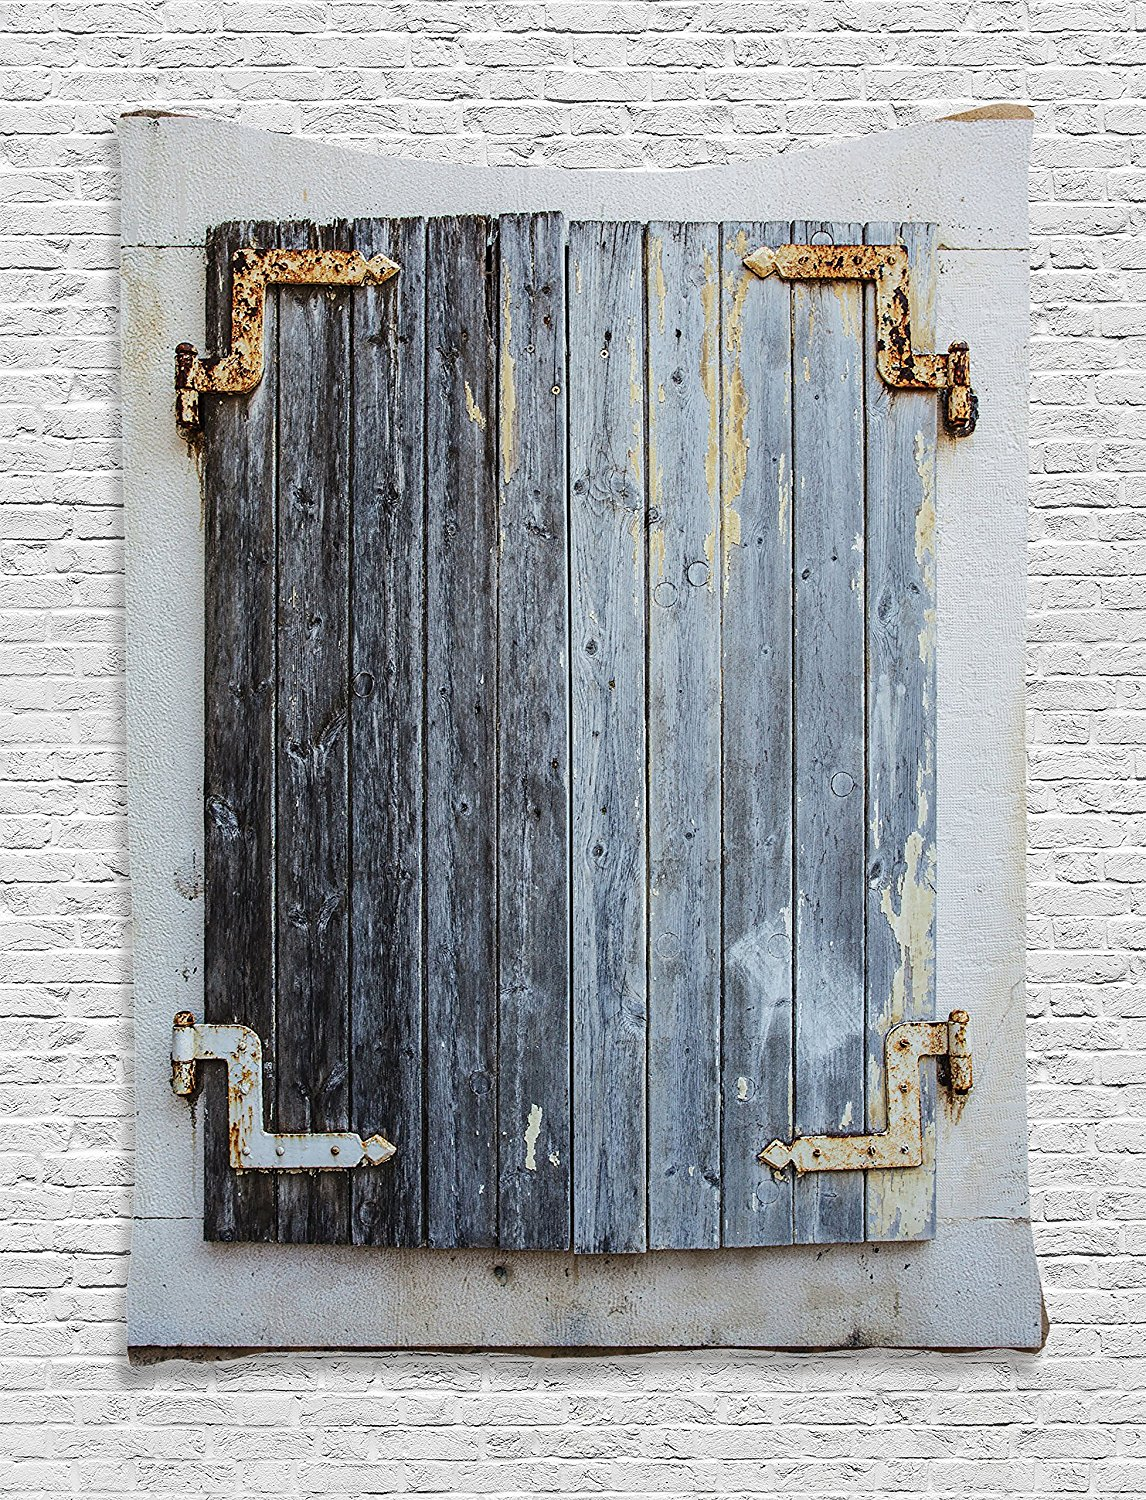 Us 17 34 16 Off Door Tapestry Shutters Decor Rustic Wooden Window Shutters With Shabby Paint Rusty Antique Traditional Village Picture Bedroom In